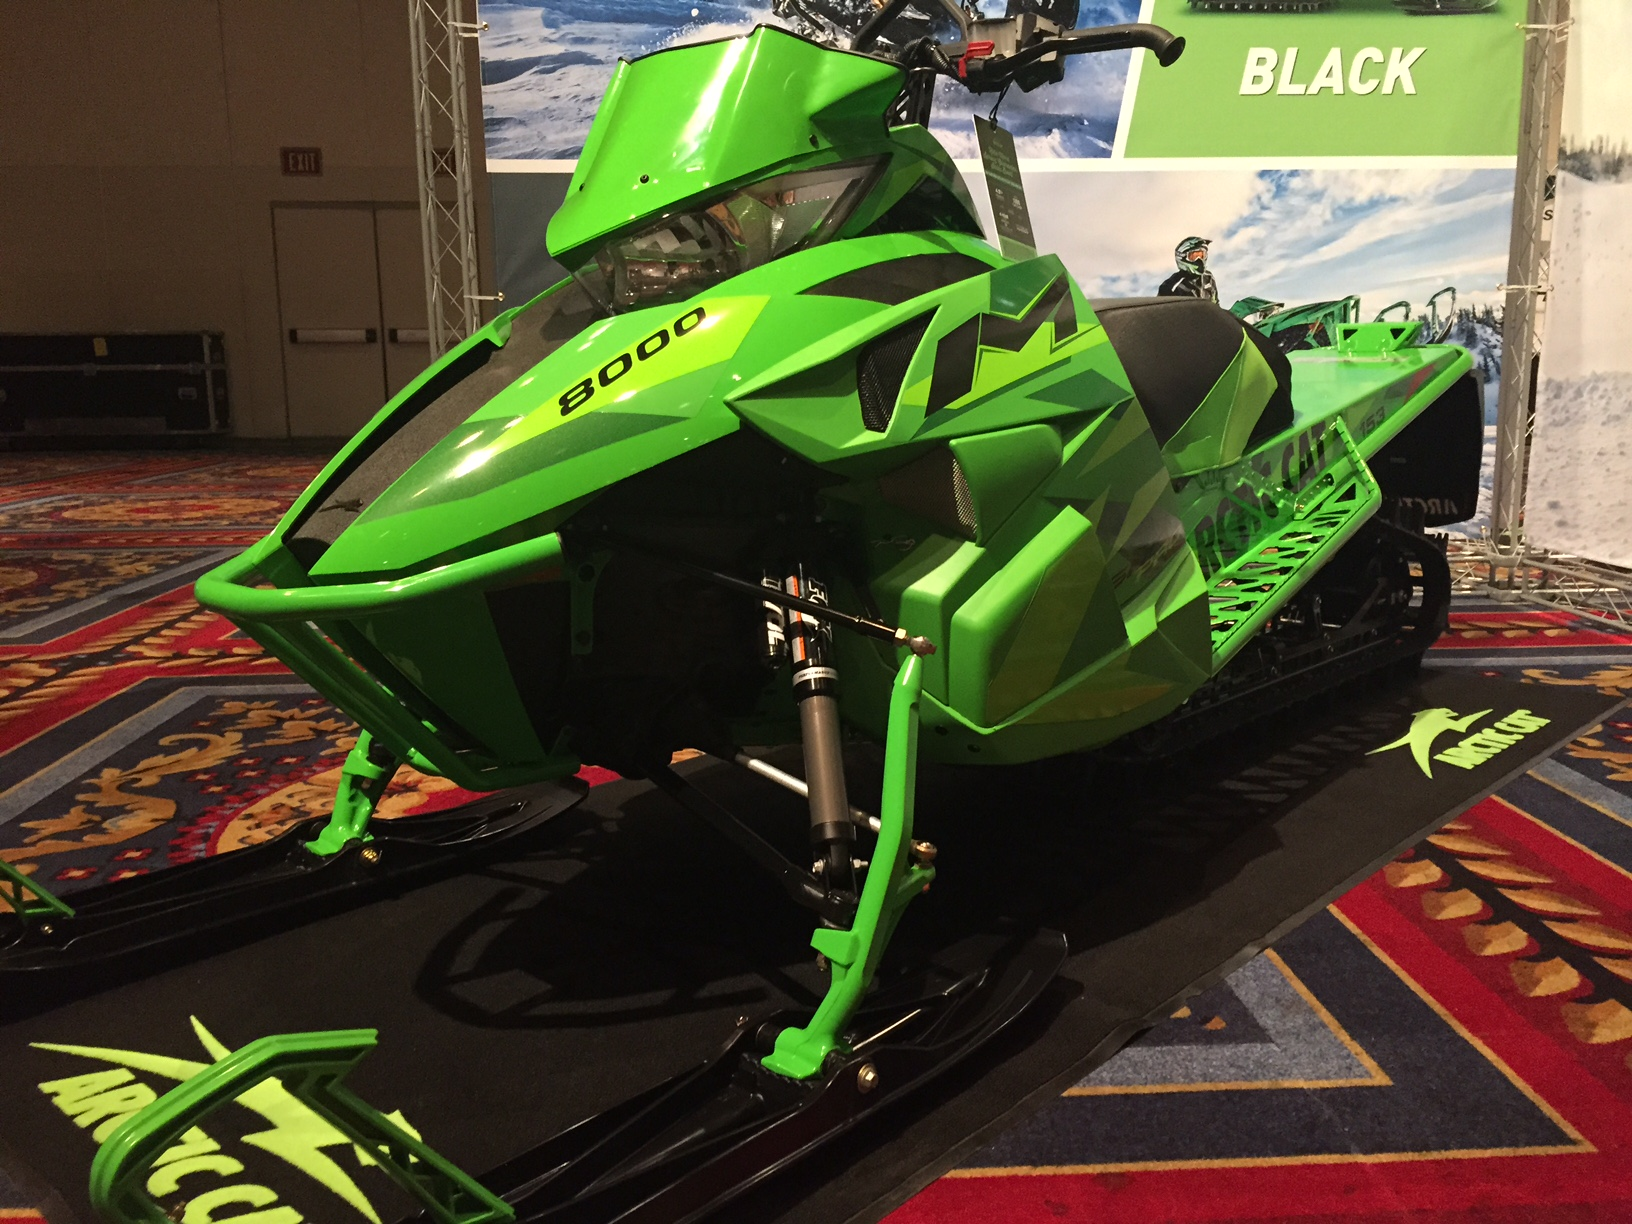 New 2016 Arctic Cat Snowmobiles Canada Release, Reviews and Models on